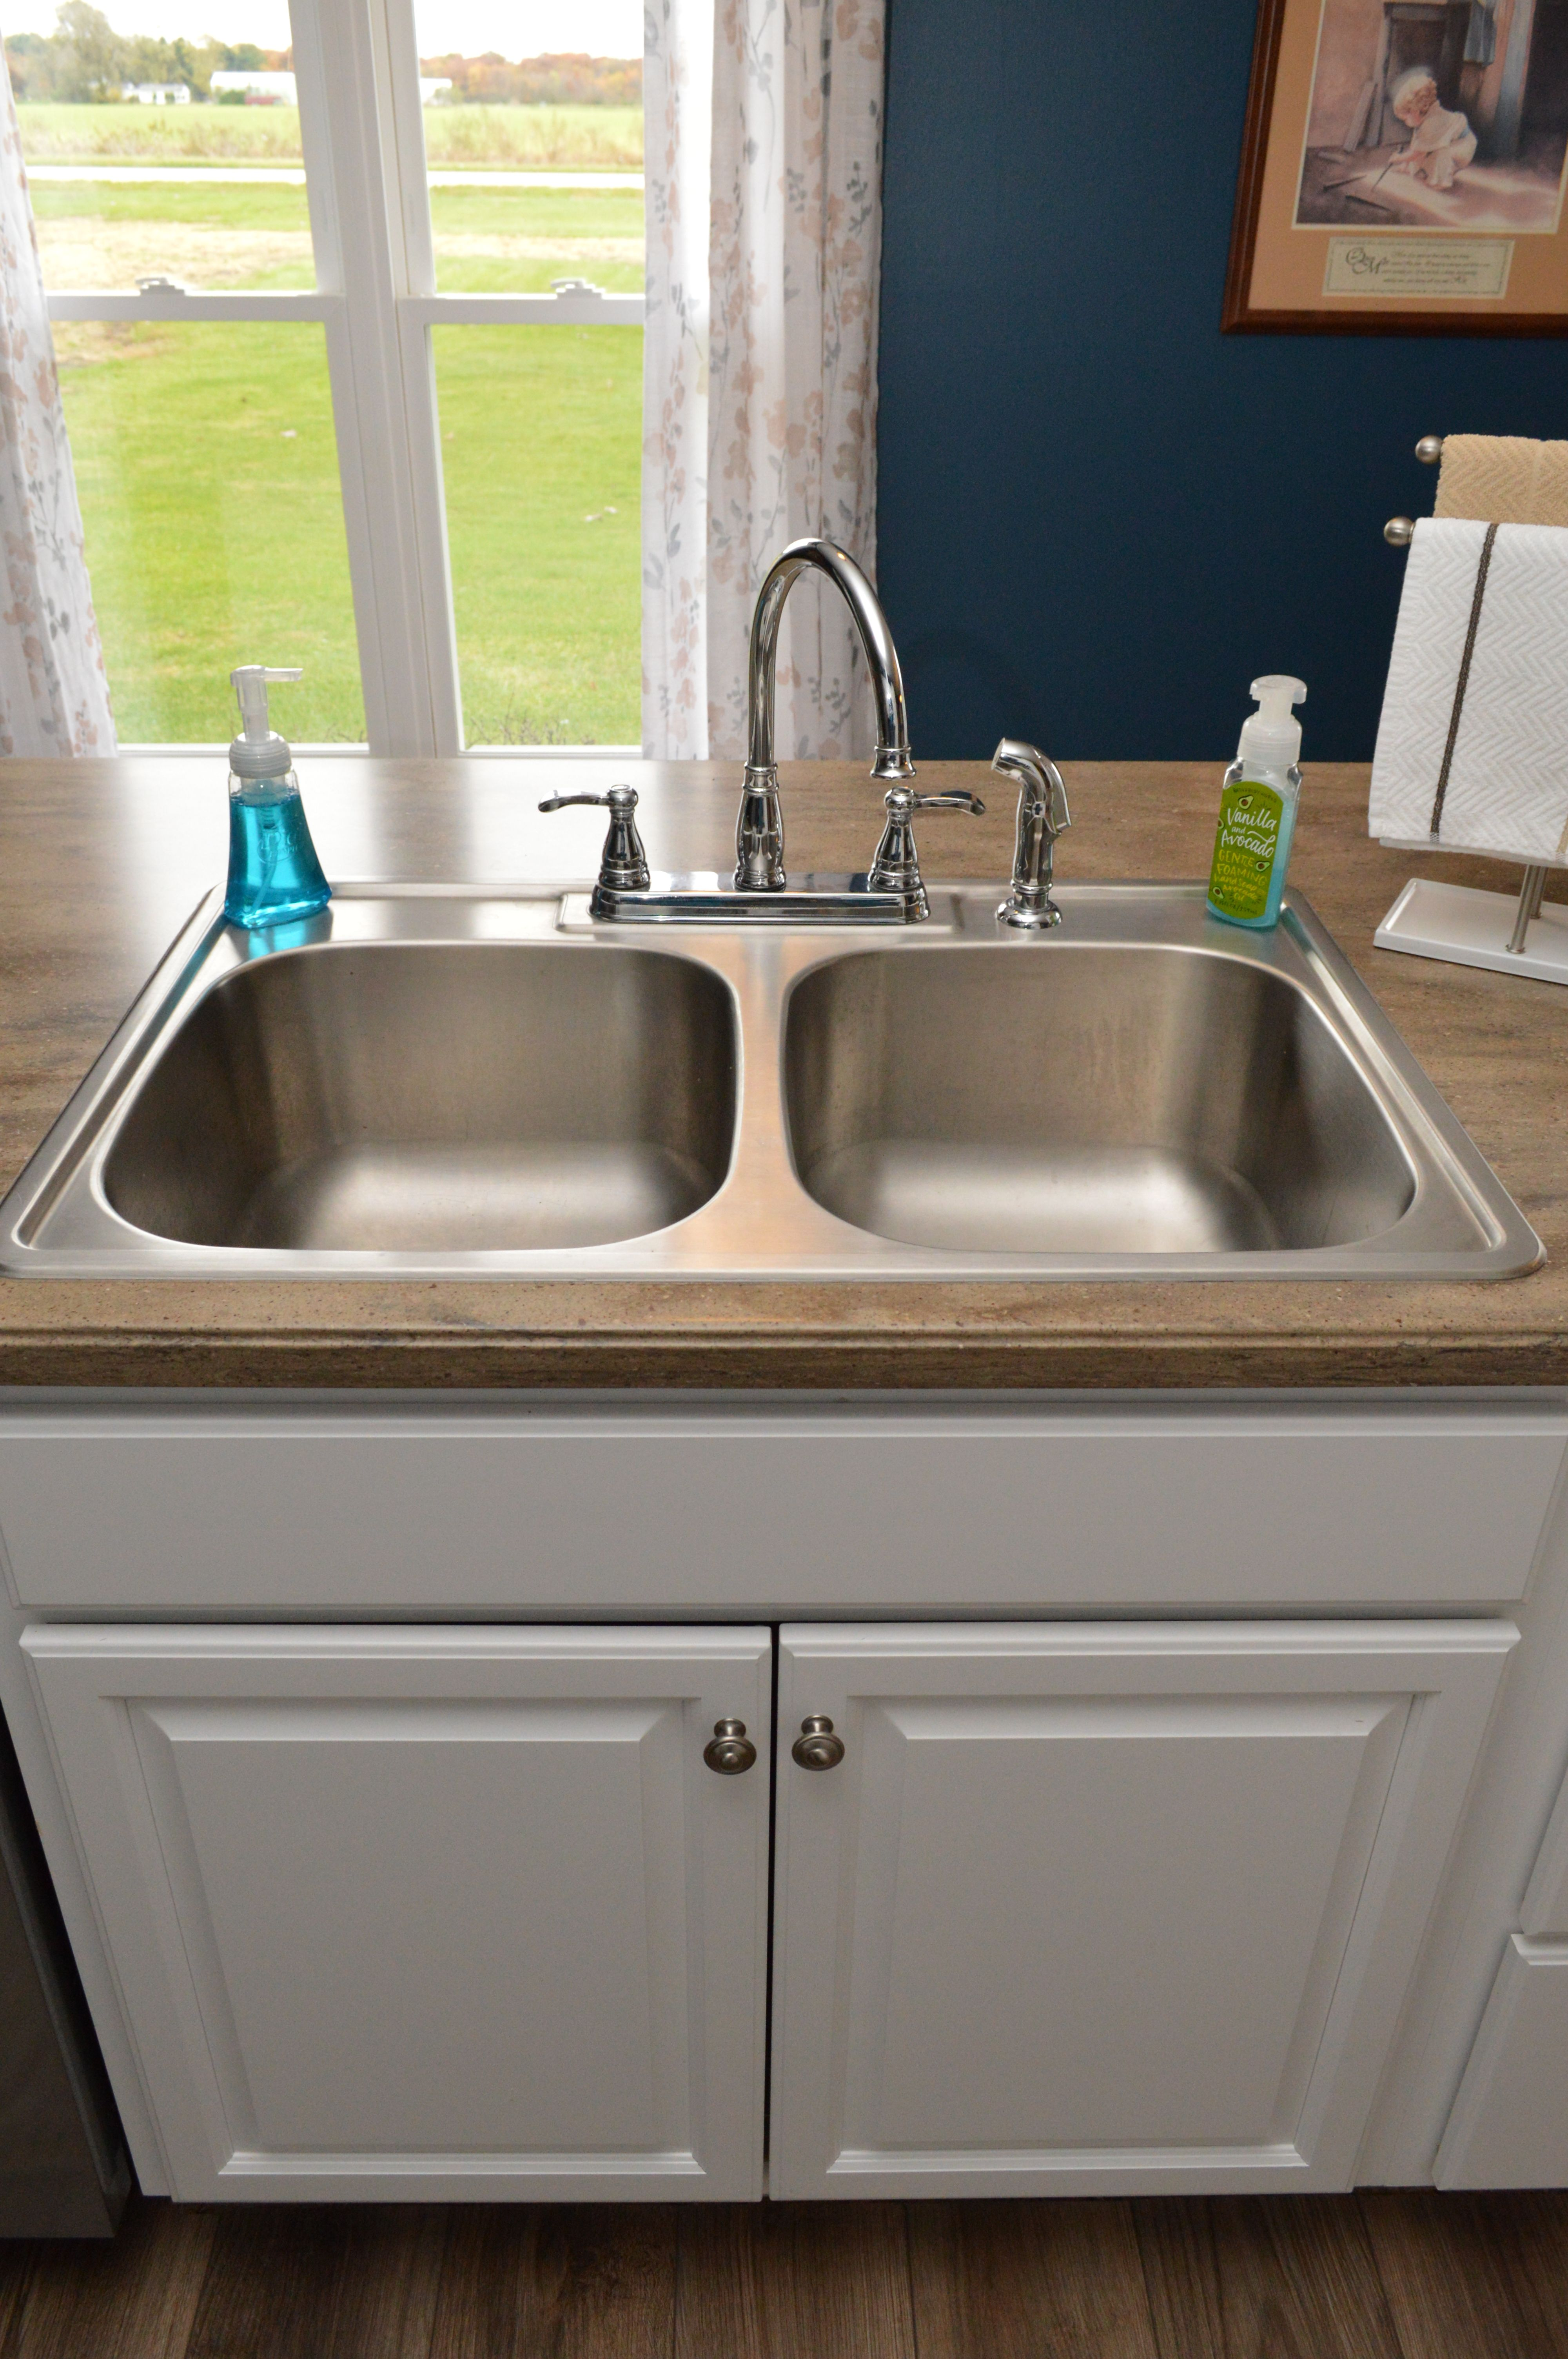 Kitchen Sink For 18 Cabinet Bailey S Cabinets Pelican Equal Bowl Stainless Steel Top Mount